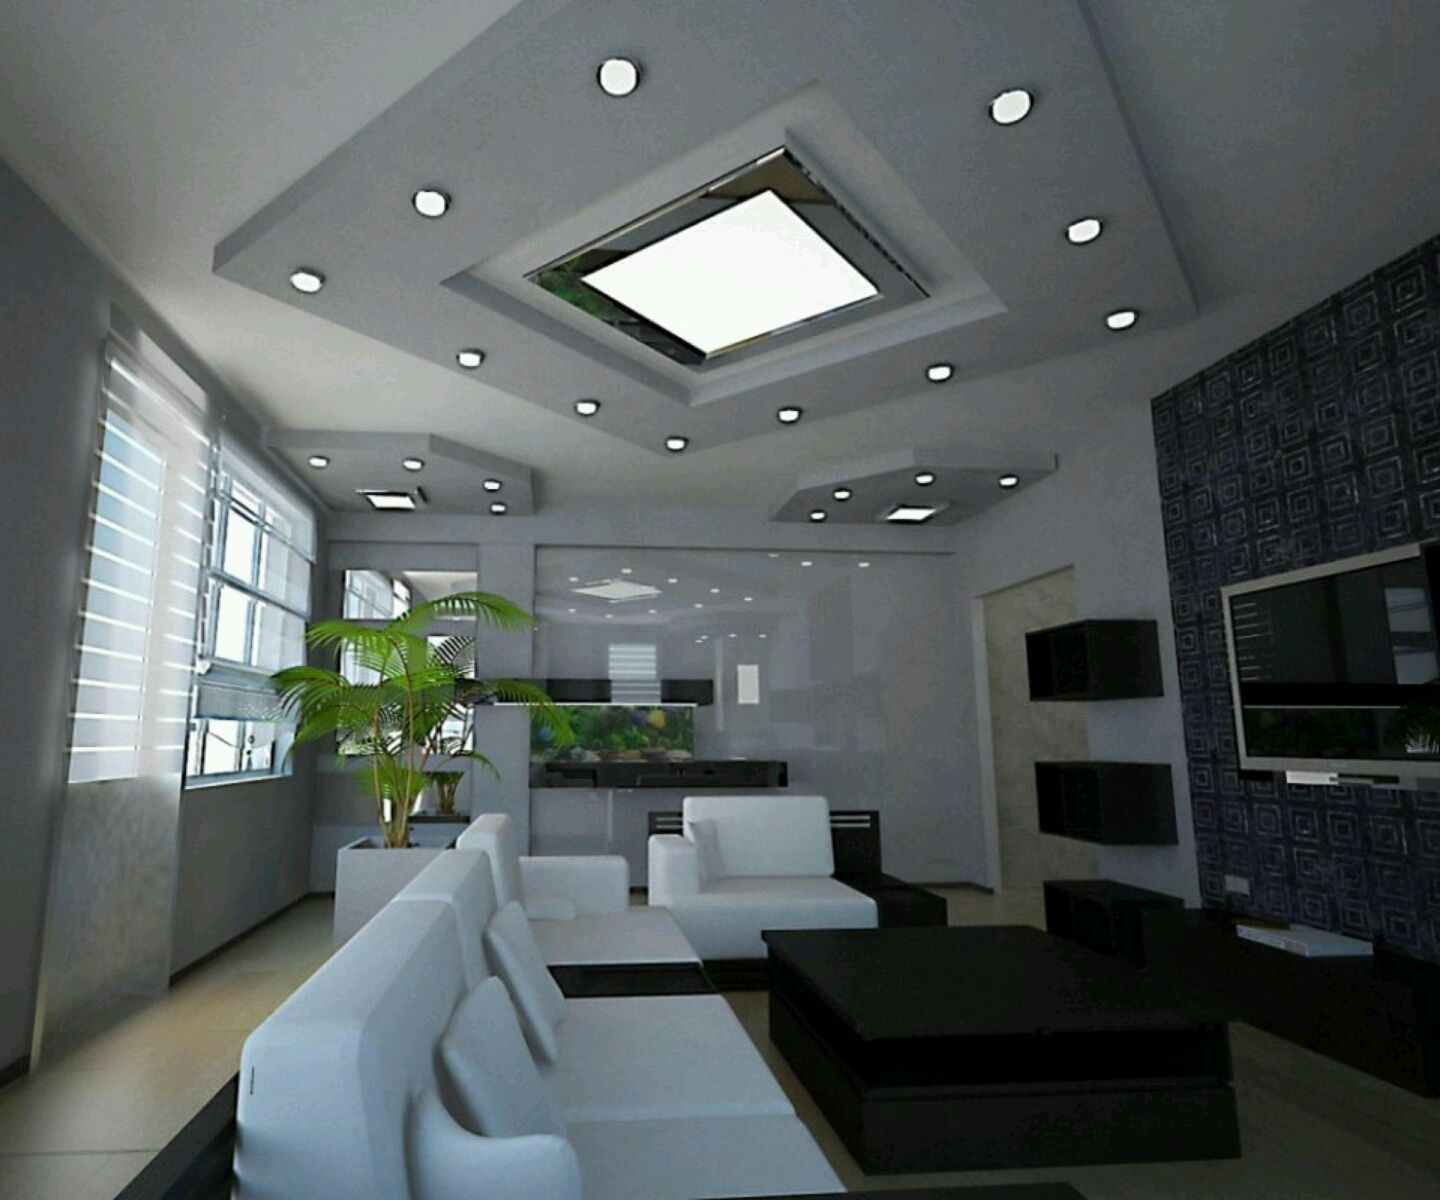 https://www.google.pl/search?q=futuristic dining  Modern Living Room  DesignsLighting DesignLighting IdeasCeiling ...